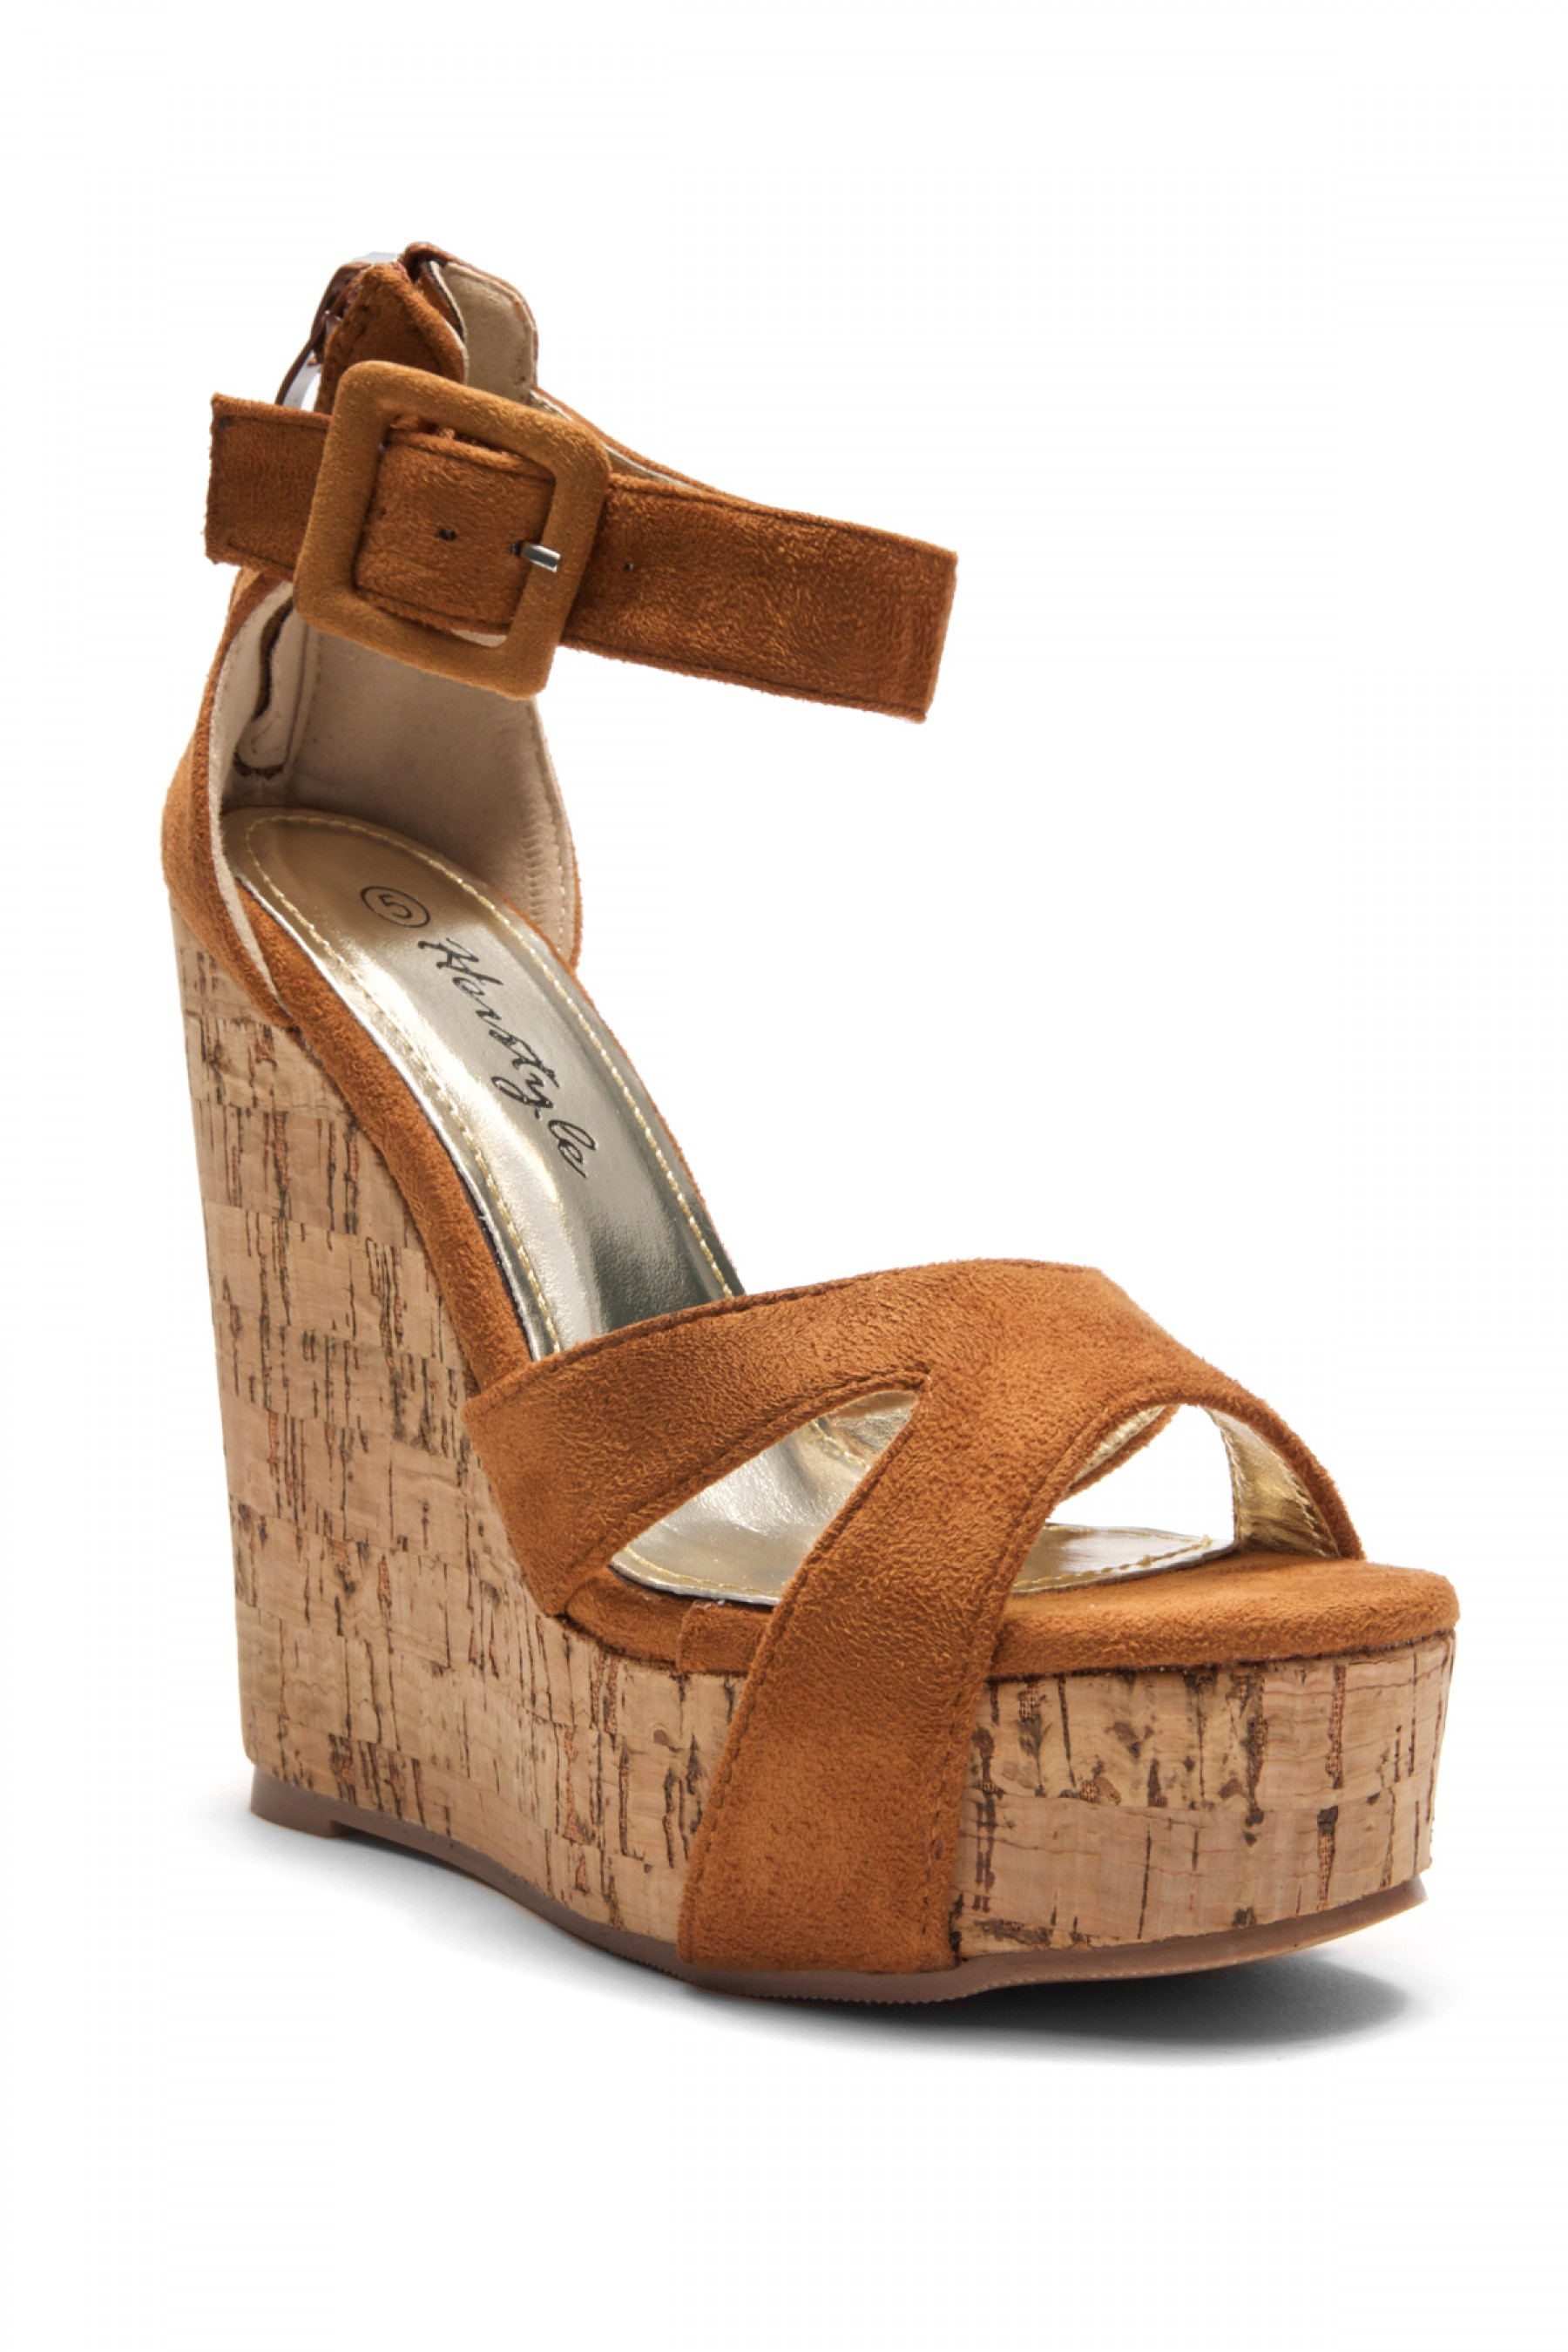 093958ca52d Women s Cognac Manmade Brenee 6-inch Cork Wedge Sandals with ...